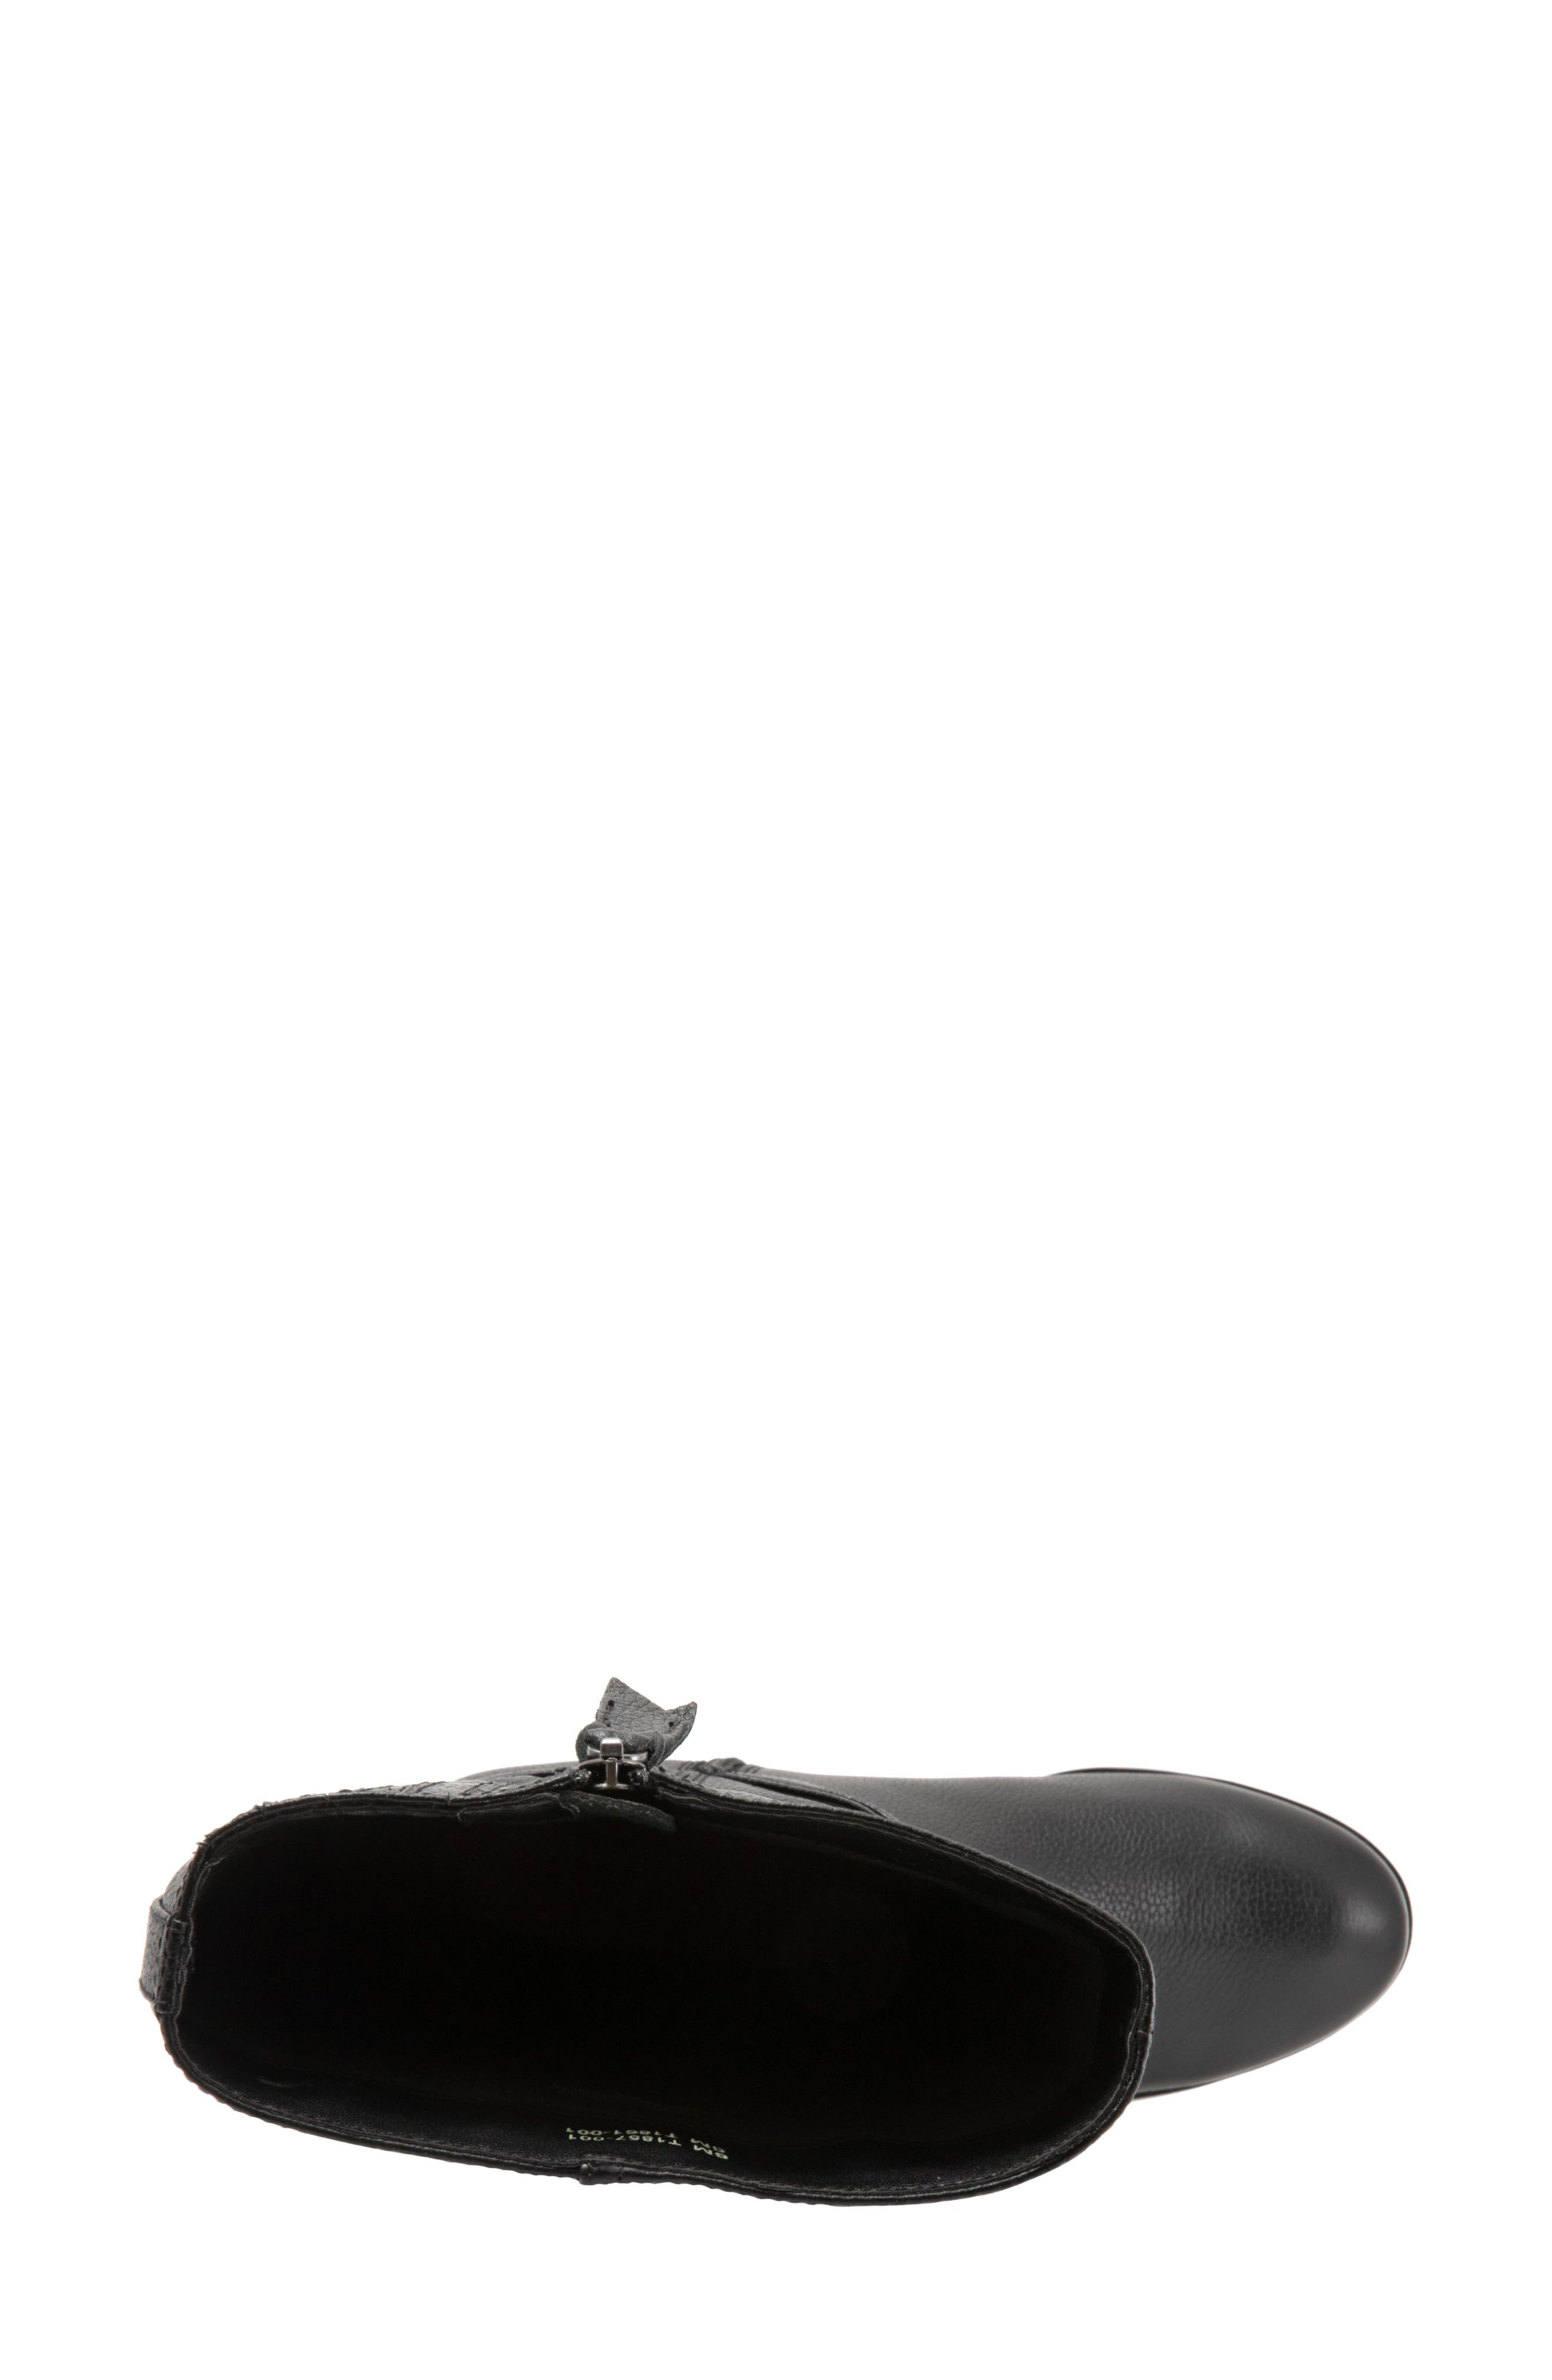 Liberty Tall Boot,                             Alternate thumbnail 5, color,                             BLACK LEATHER